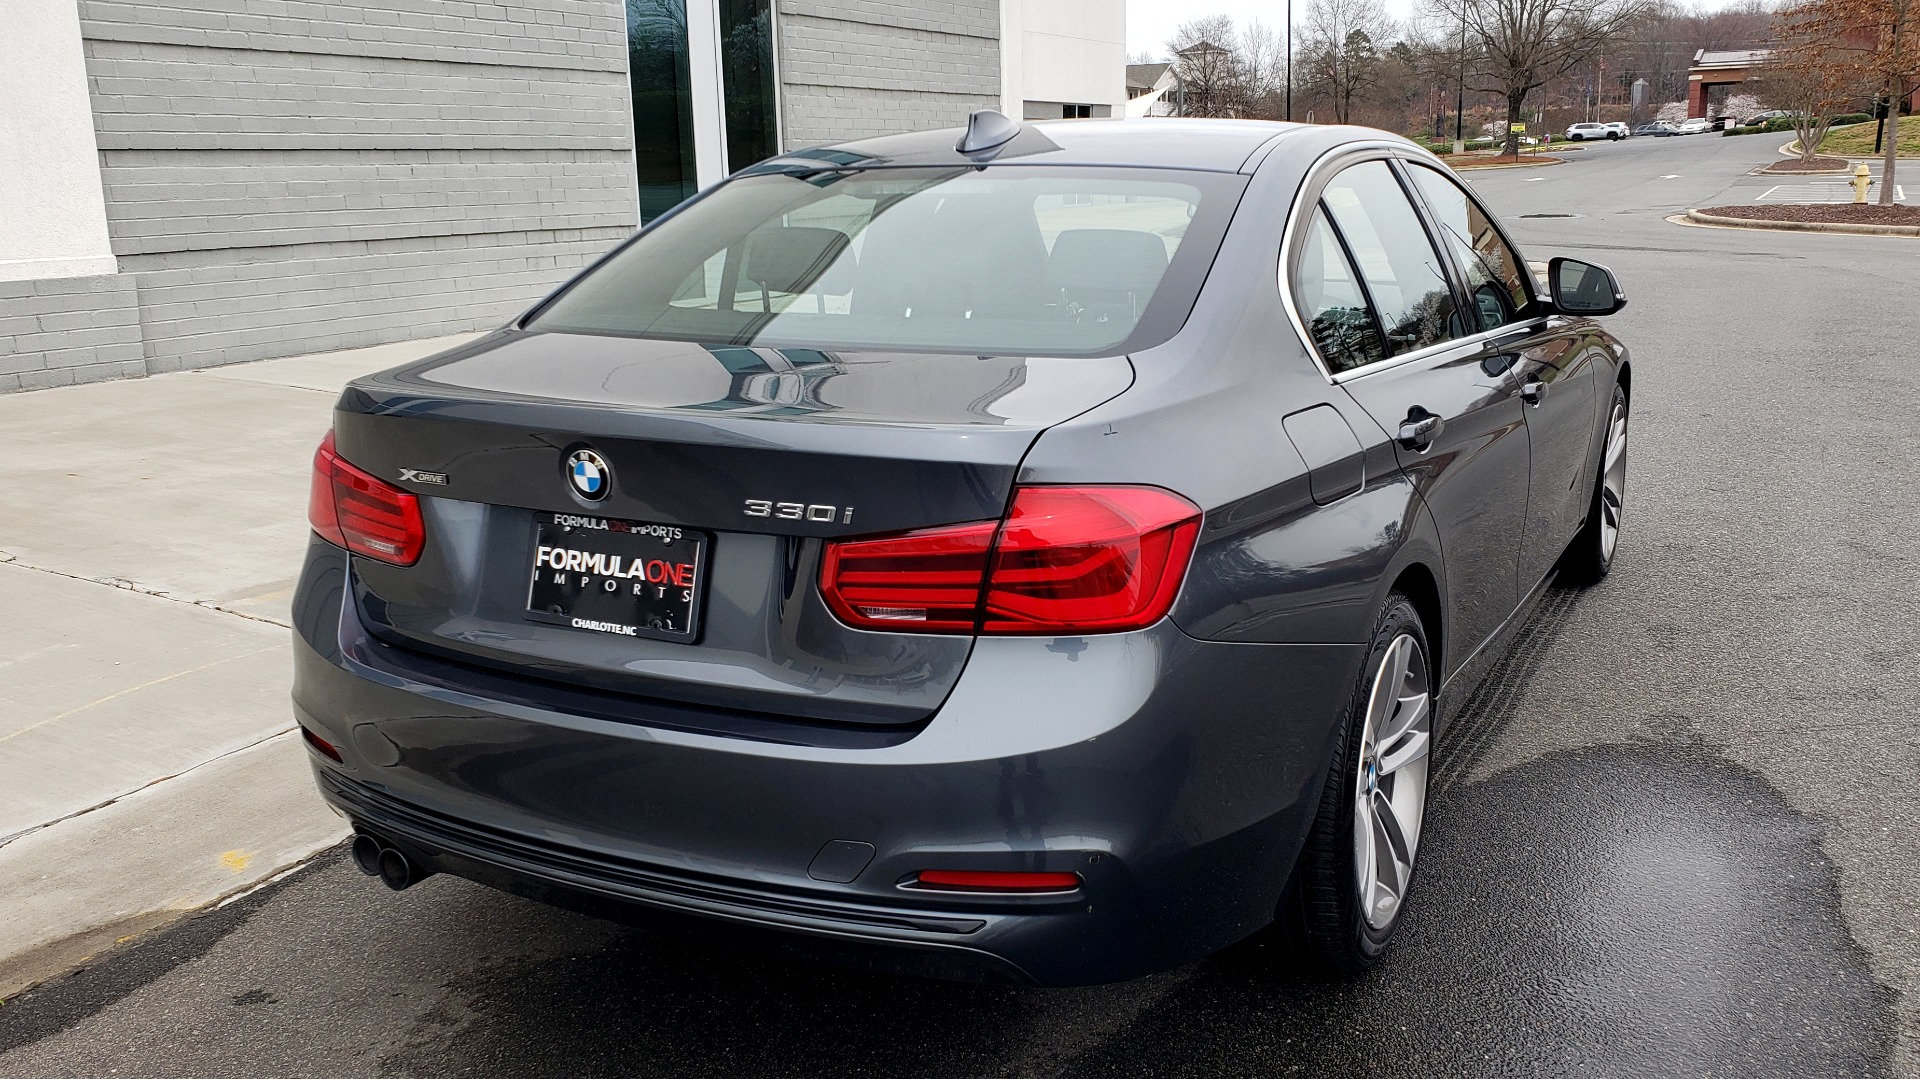 Used 2018 BMW 3 SERIES 330I XDRIVE PREMIUM / CONV PKG NAV / BLIND SPOT / HTD STS / REARVIEW for sale $22,695 at Formula Imports in Charlotte NC 28227 5